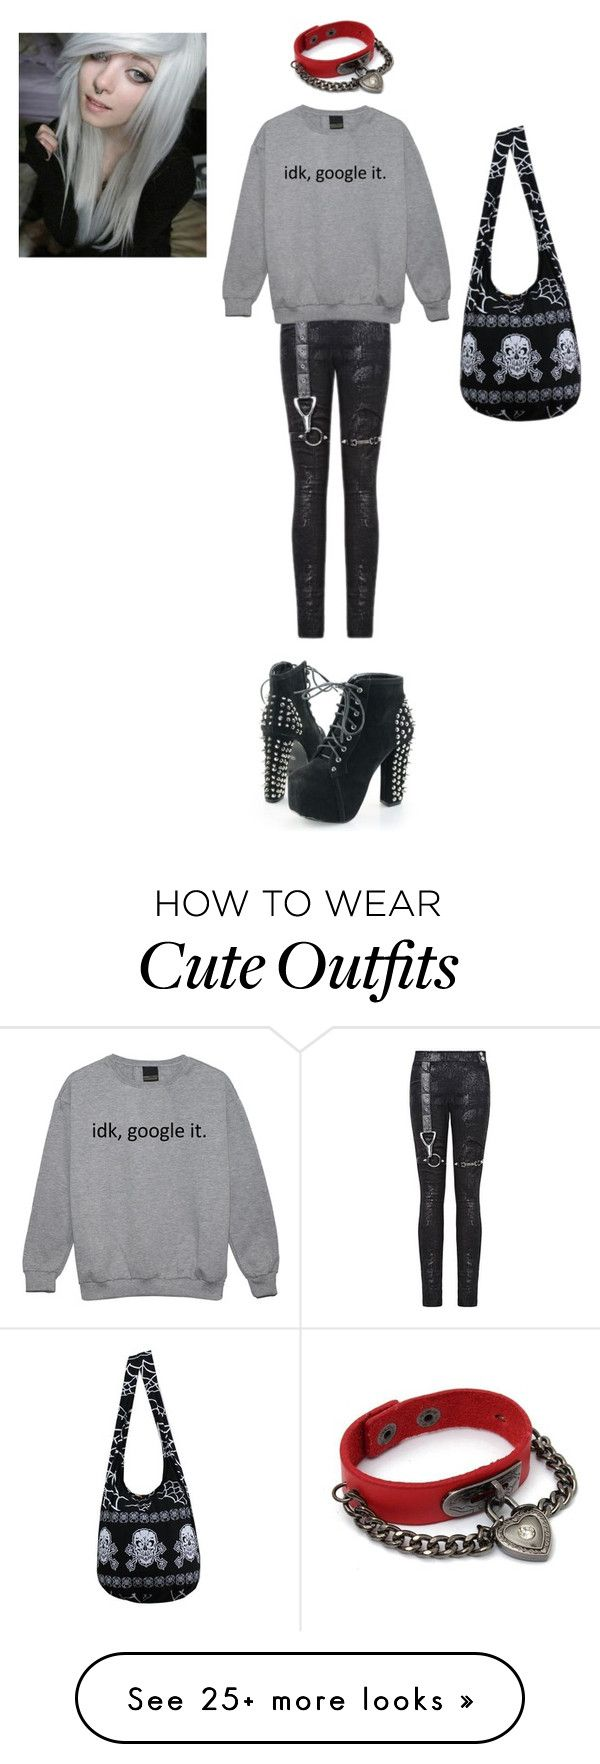 """""""Blaze wilson- thursday outfit"""" by oh0601 on Polyvore"""